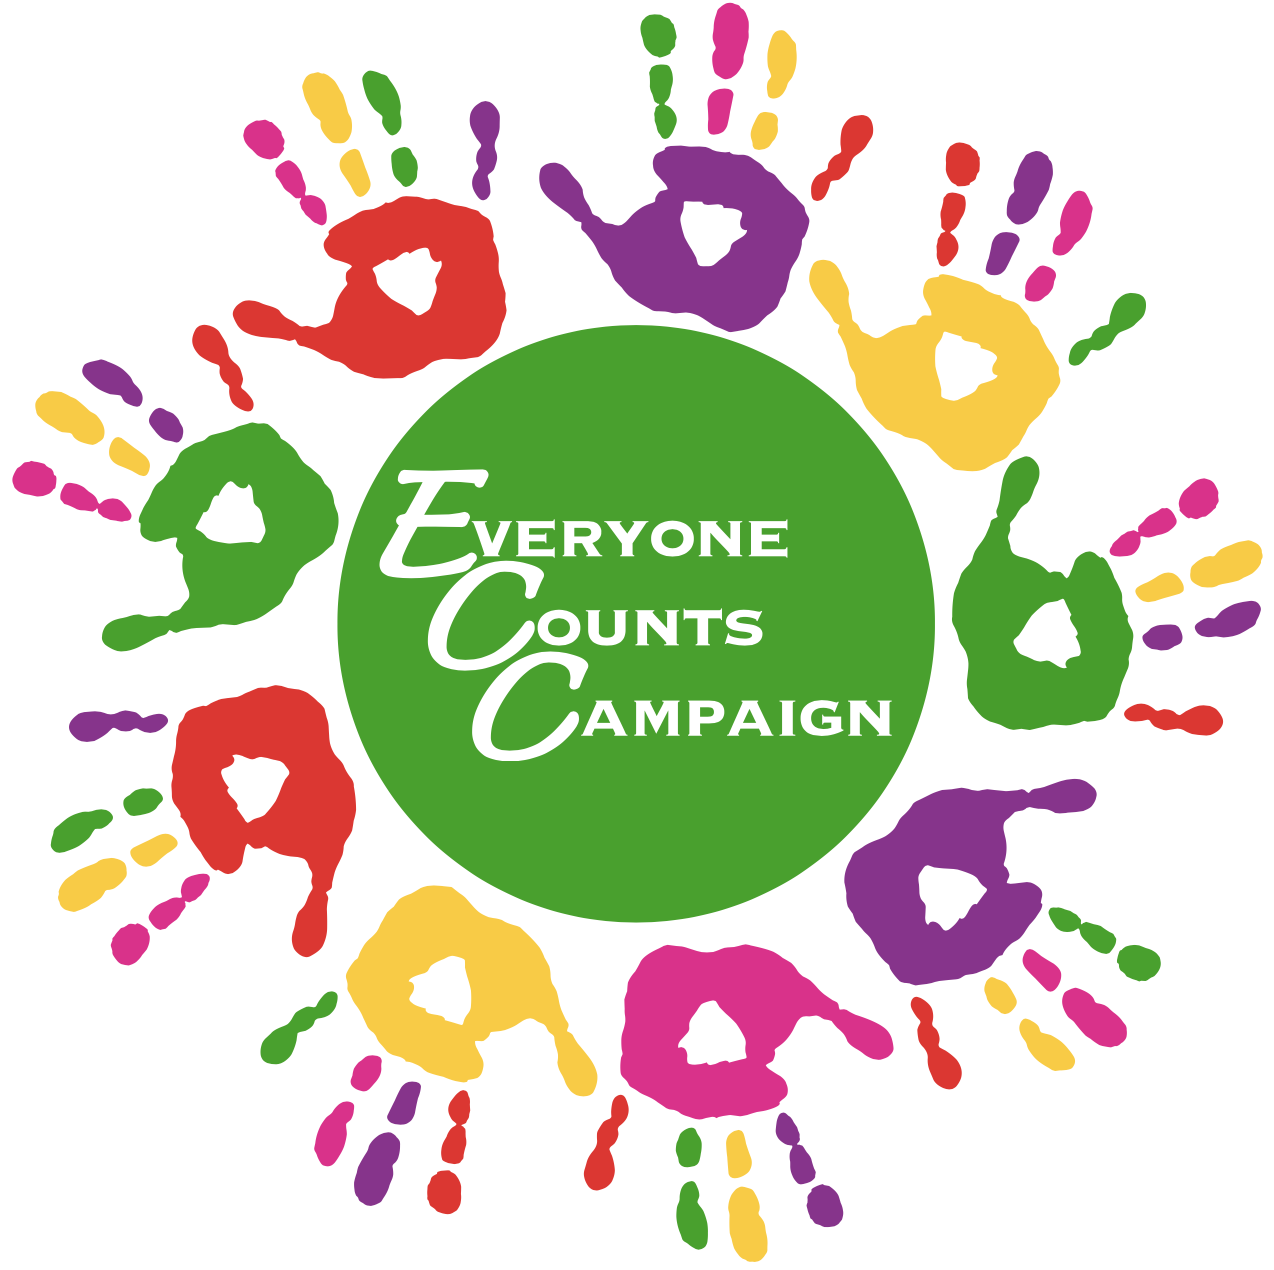 Everyone Counts Campaign